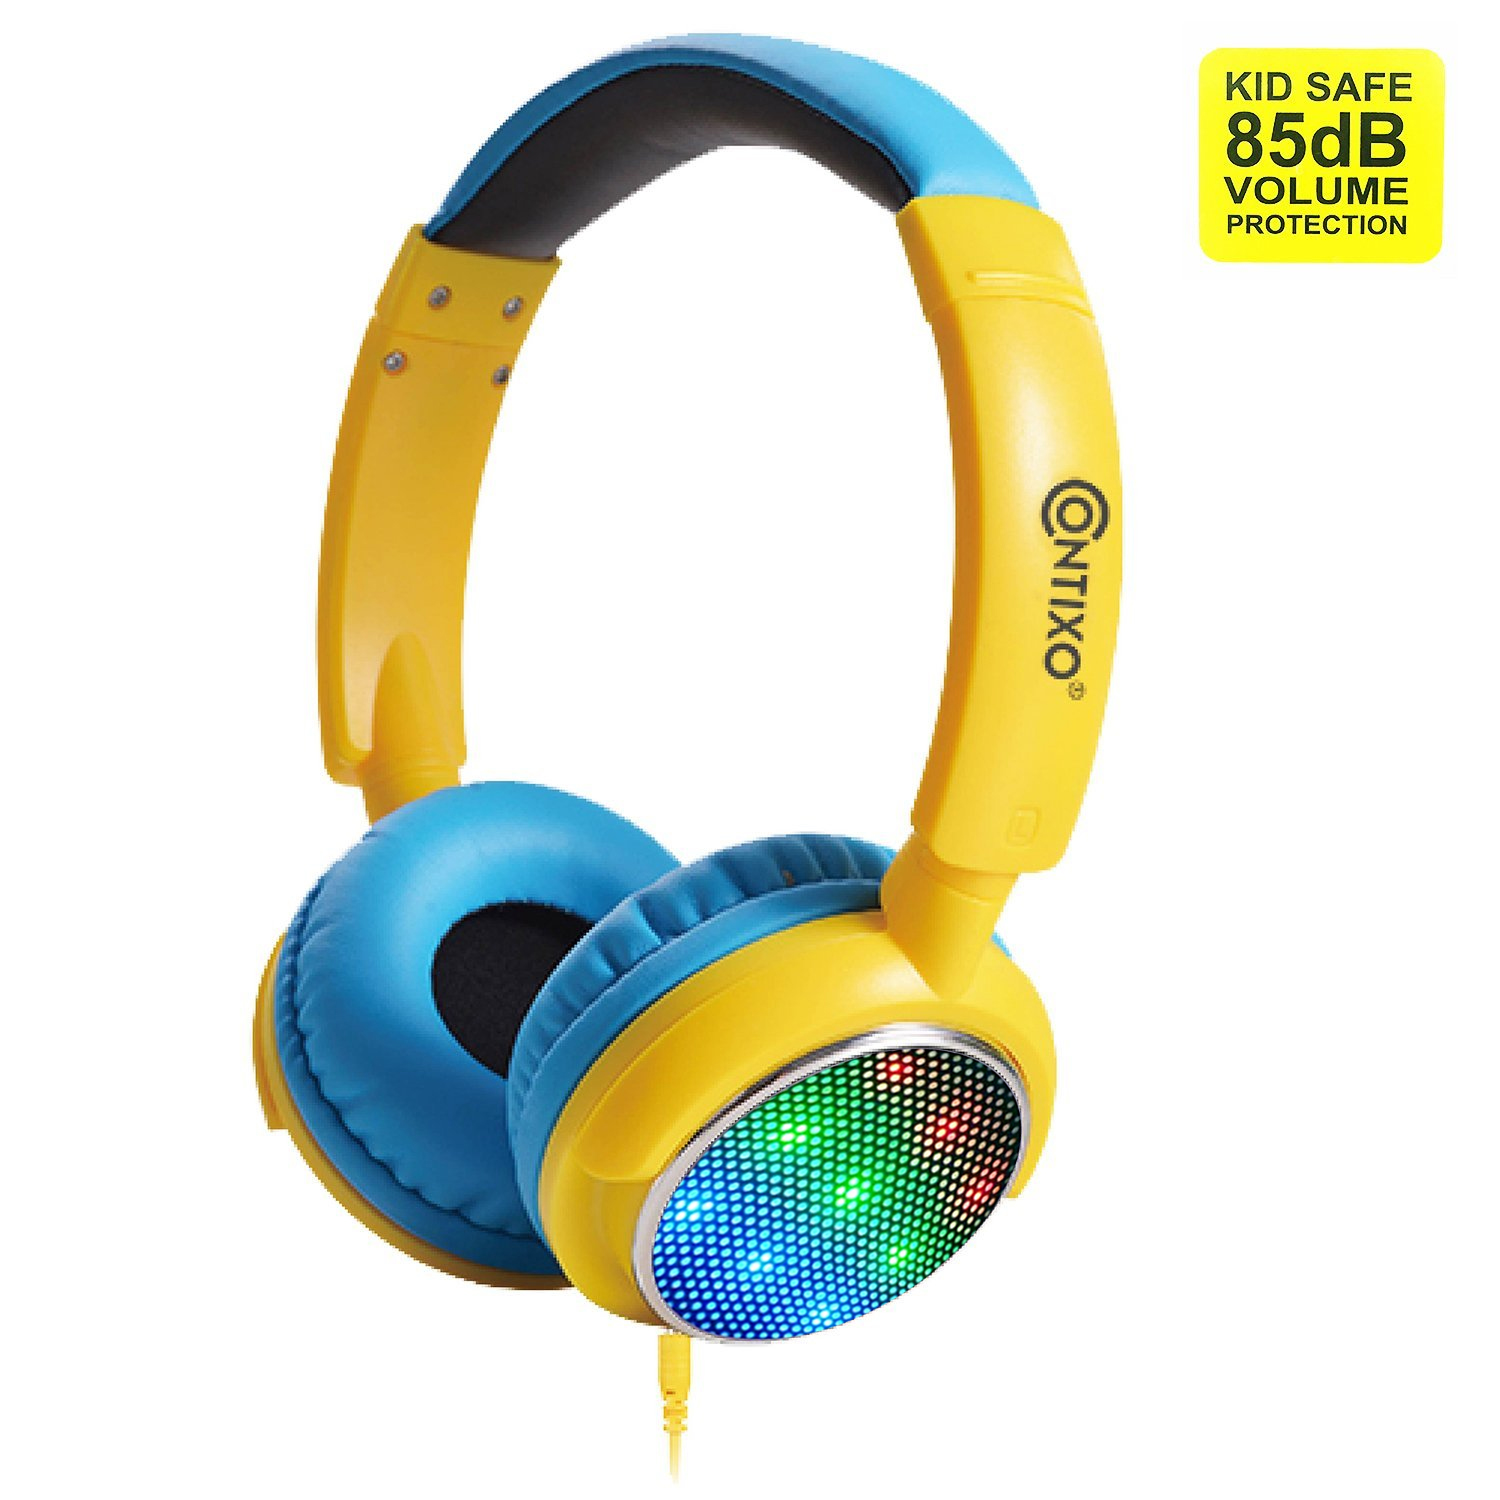 kb300 yellow 11-22(1)